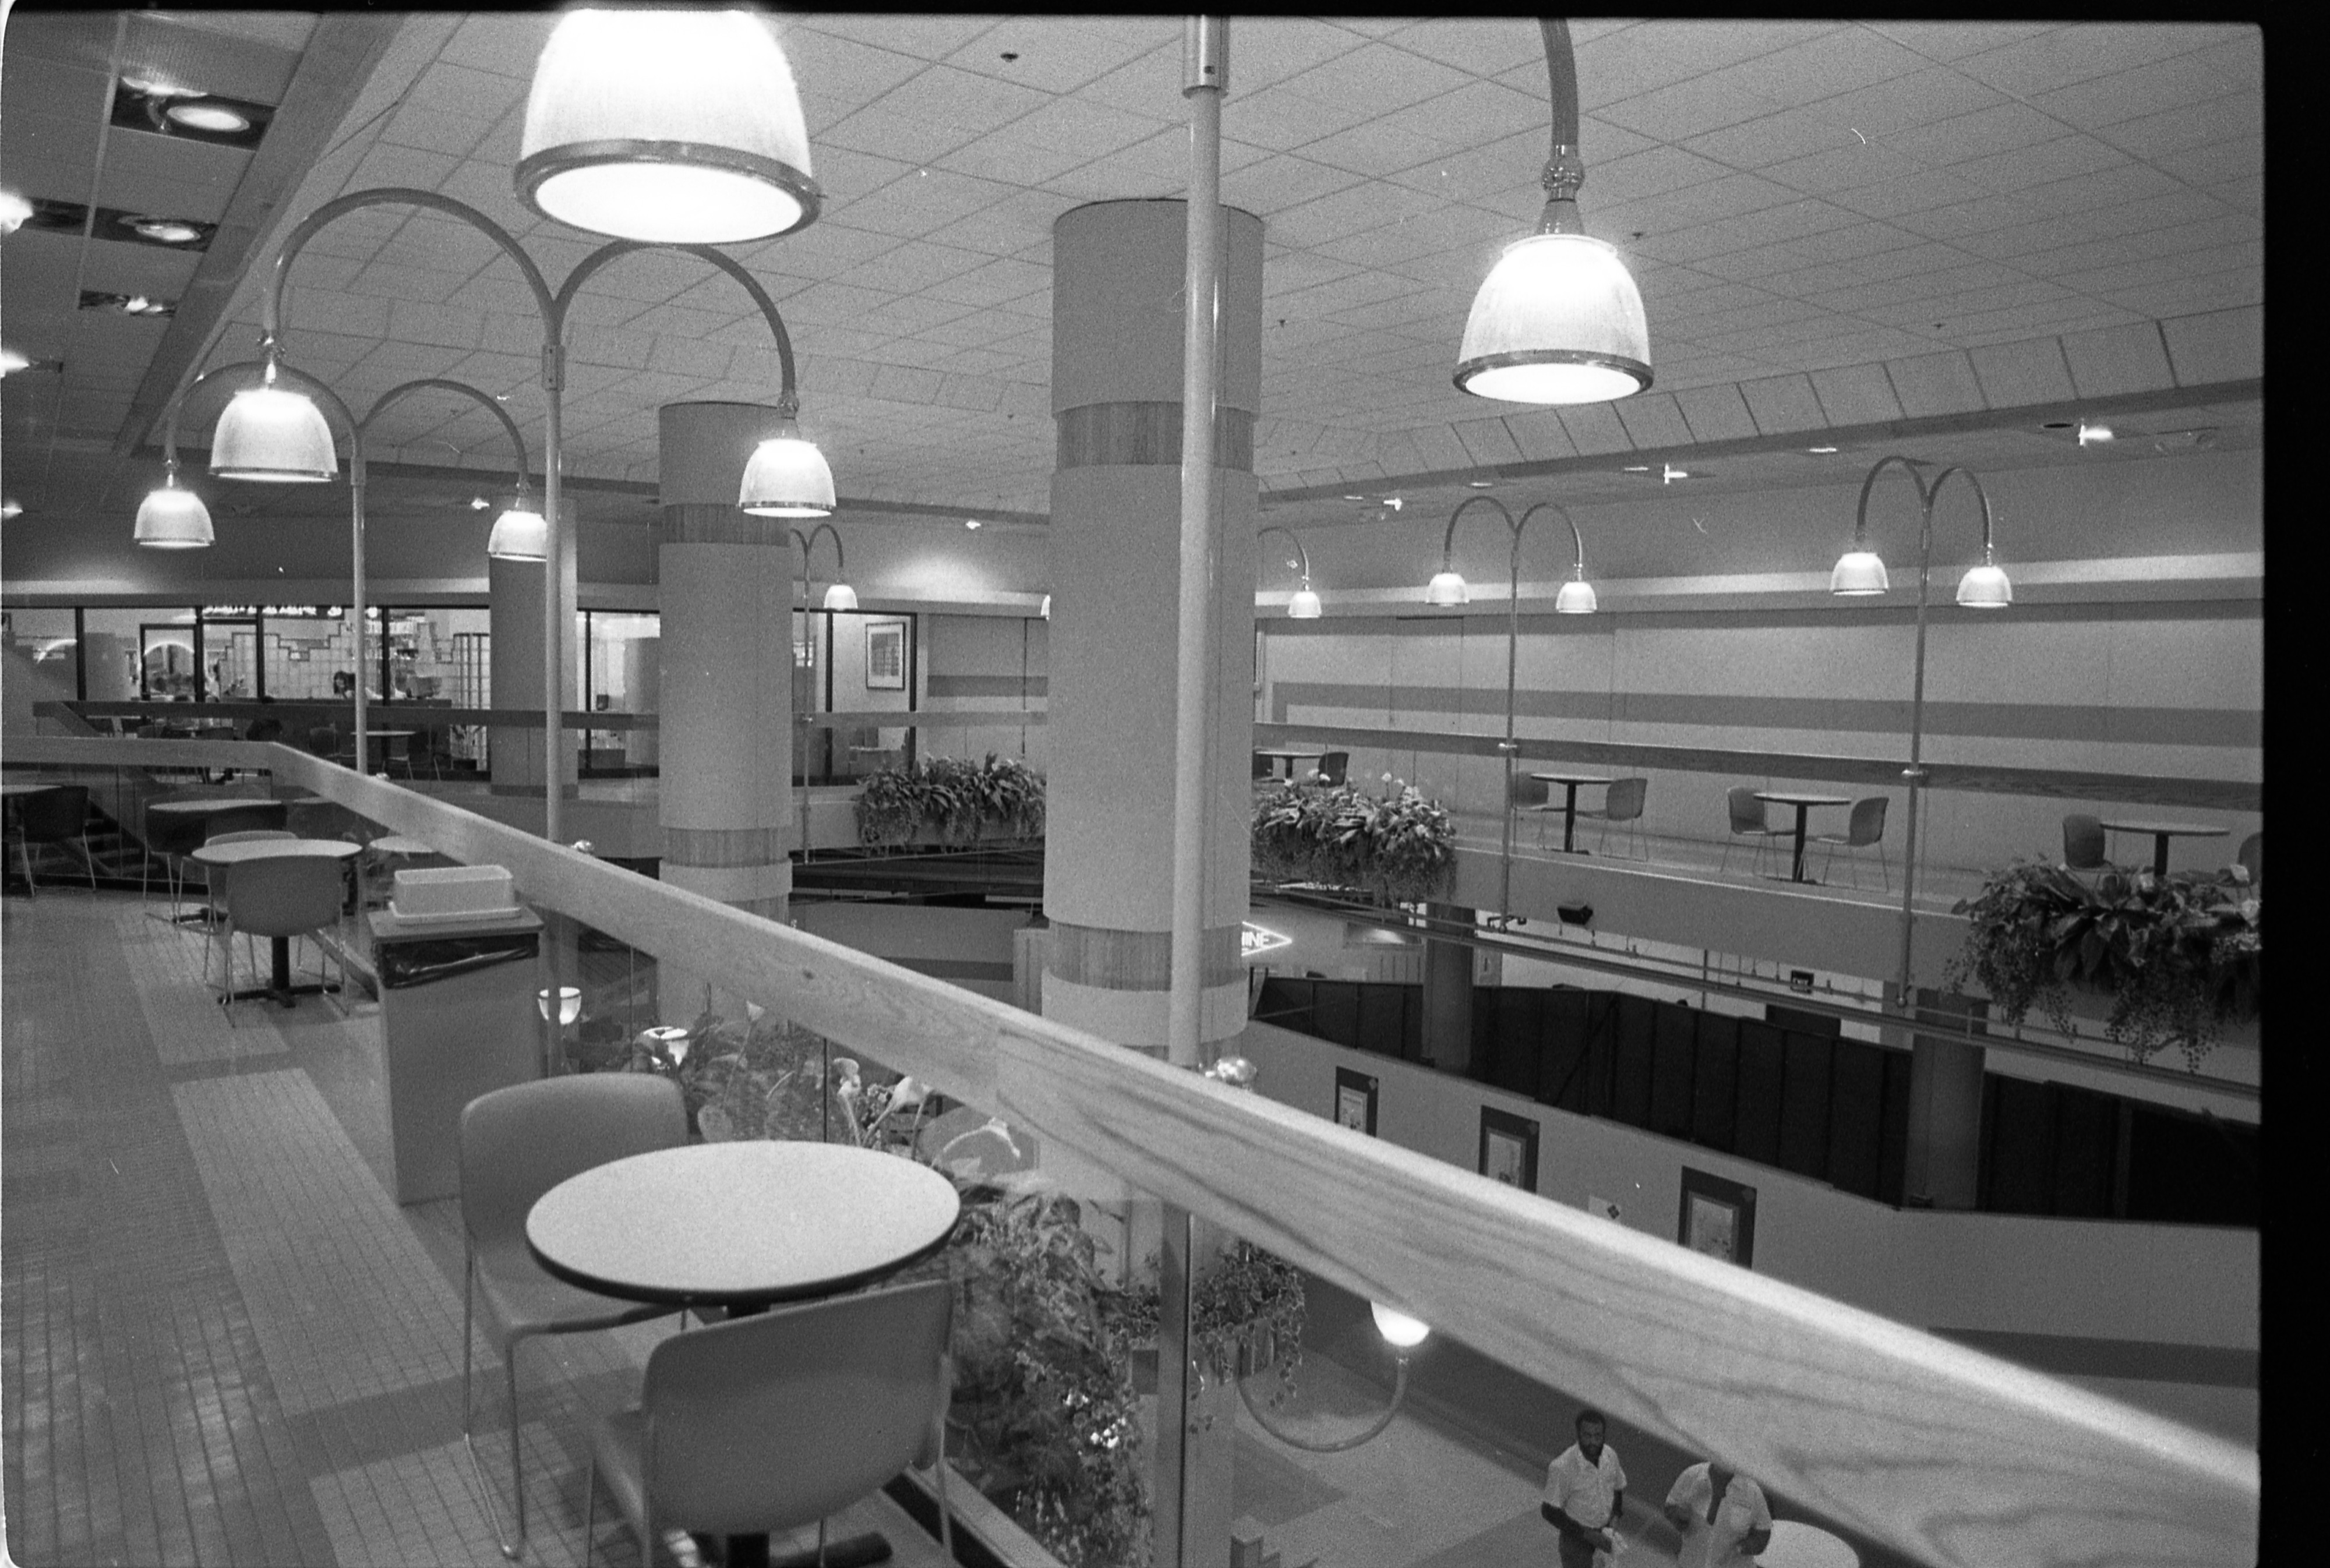 2nd Floor Of Liberty Square Mall, December 1987 image